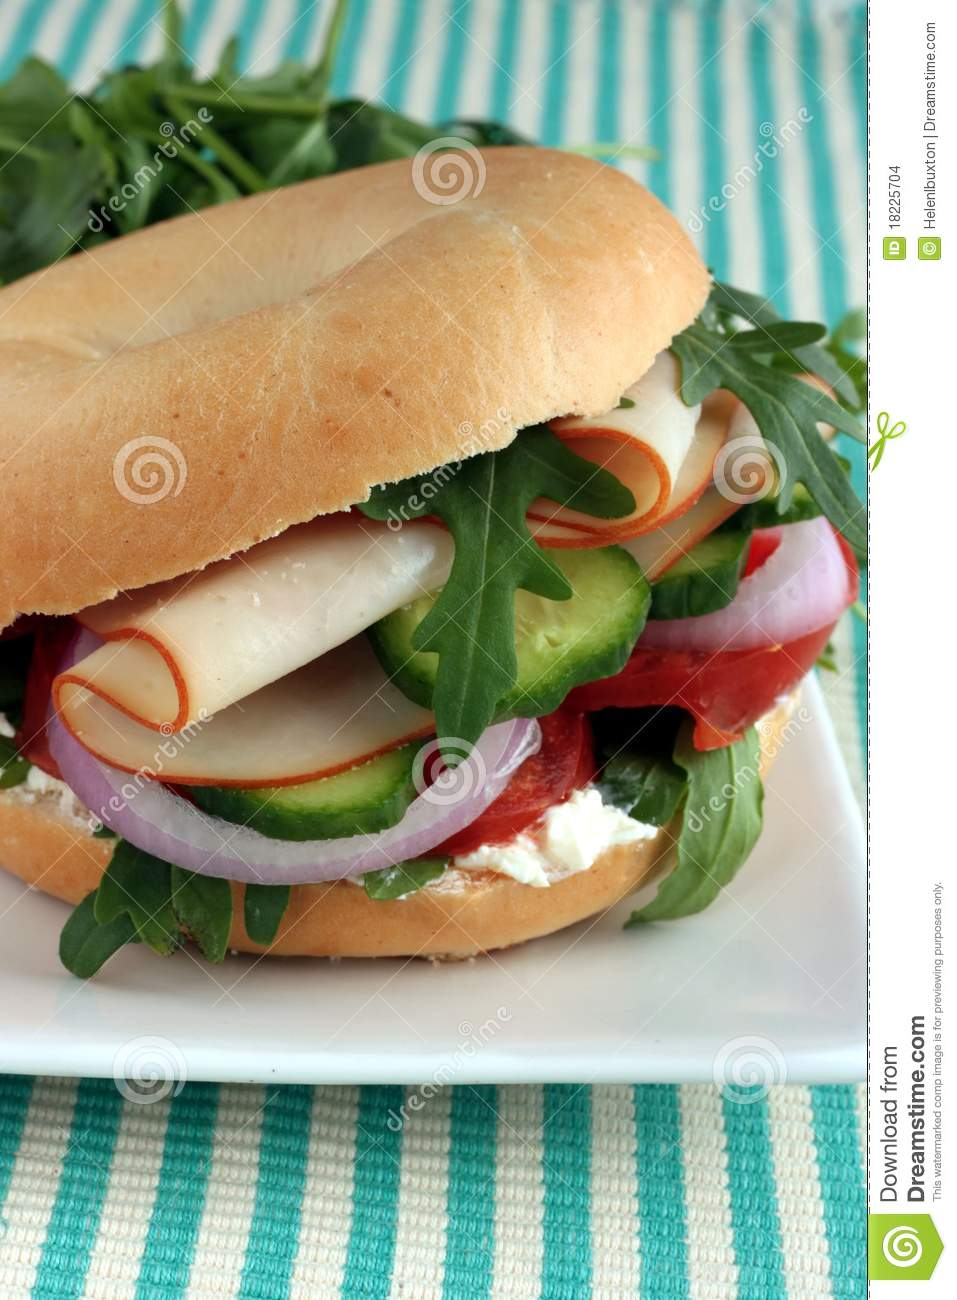 plain bagel vitamins with Stock Images Ham Salad Bagel Close Up Image18225704 on Calorie Counter additionally Benefitsofhealthyeating wordpress besides Sodium Content In Bagels 1038 in addition 33142920 furthermore Stock Images Ham Salad Bagel Close Up Image18225704.